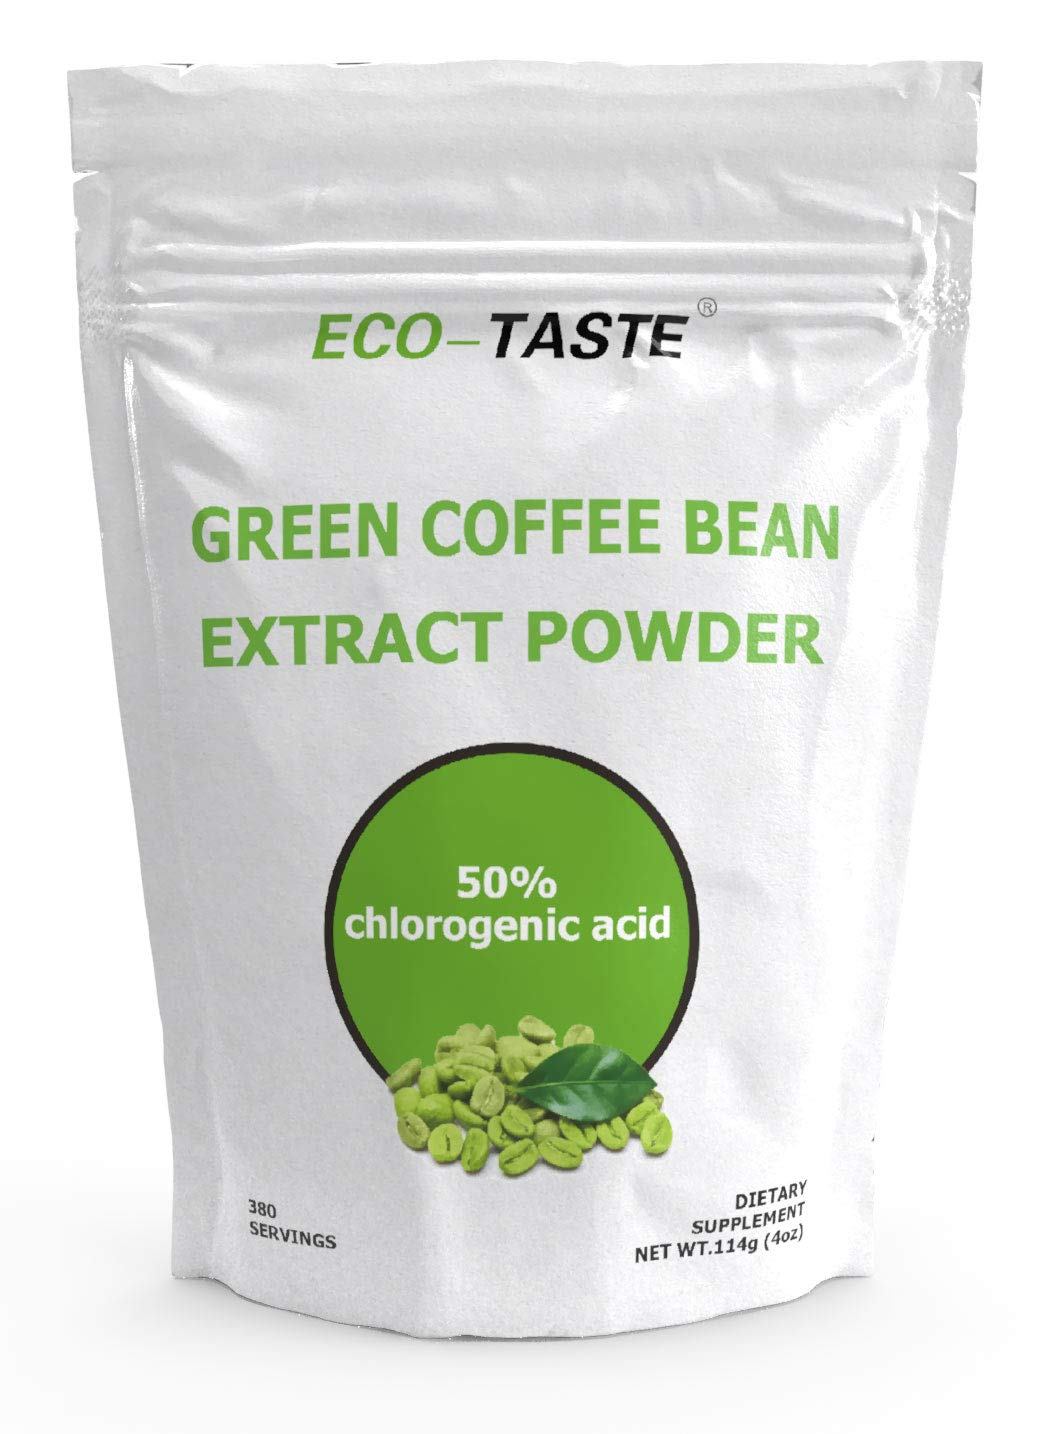 Green Coffee Bean Extract Powder for Improved Metabolism and Fat Burn, 50% Chlorogenic Acid, 114g